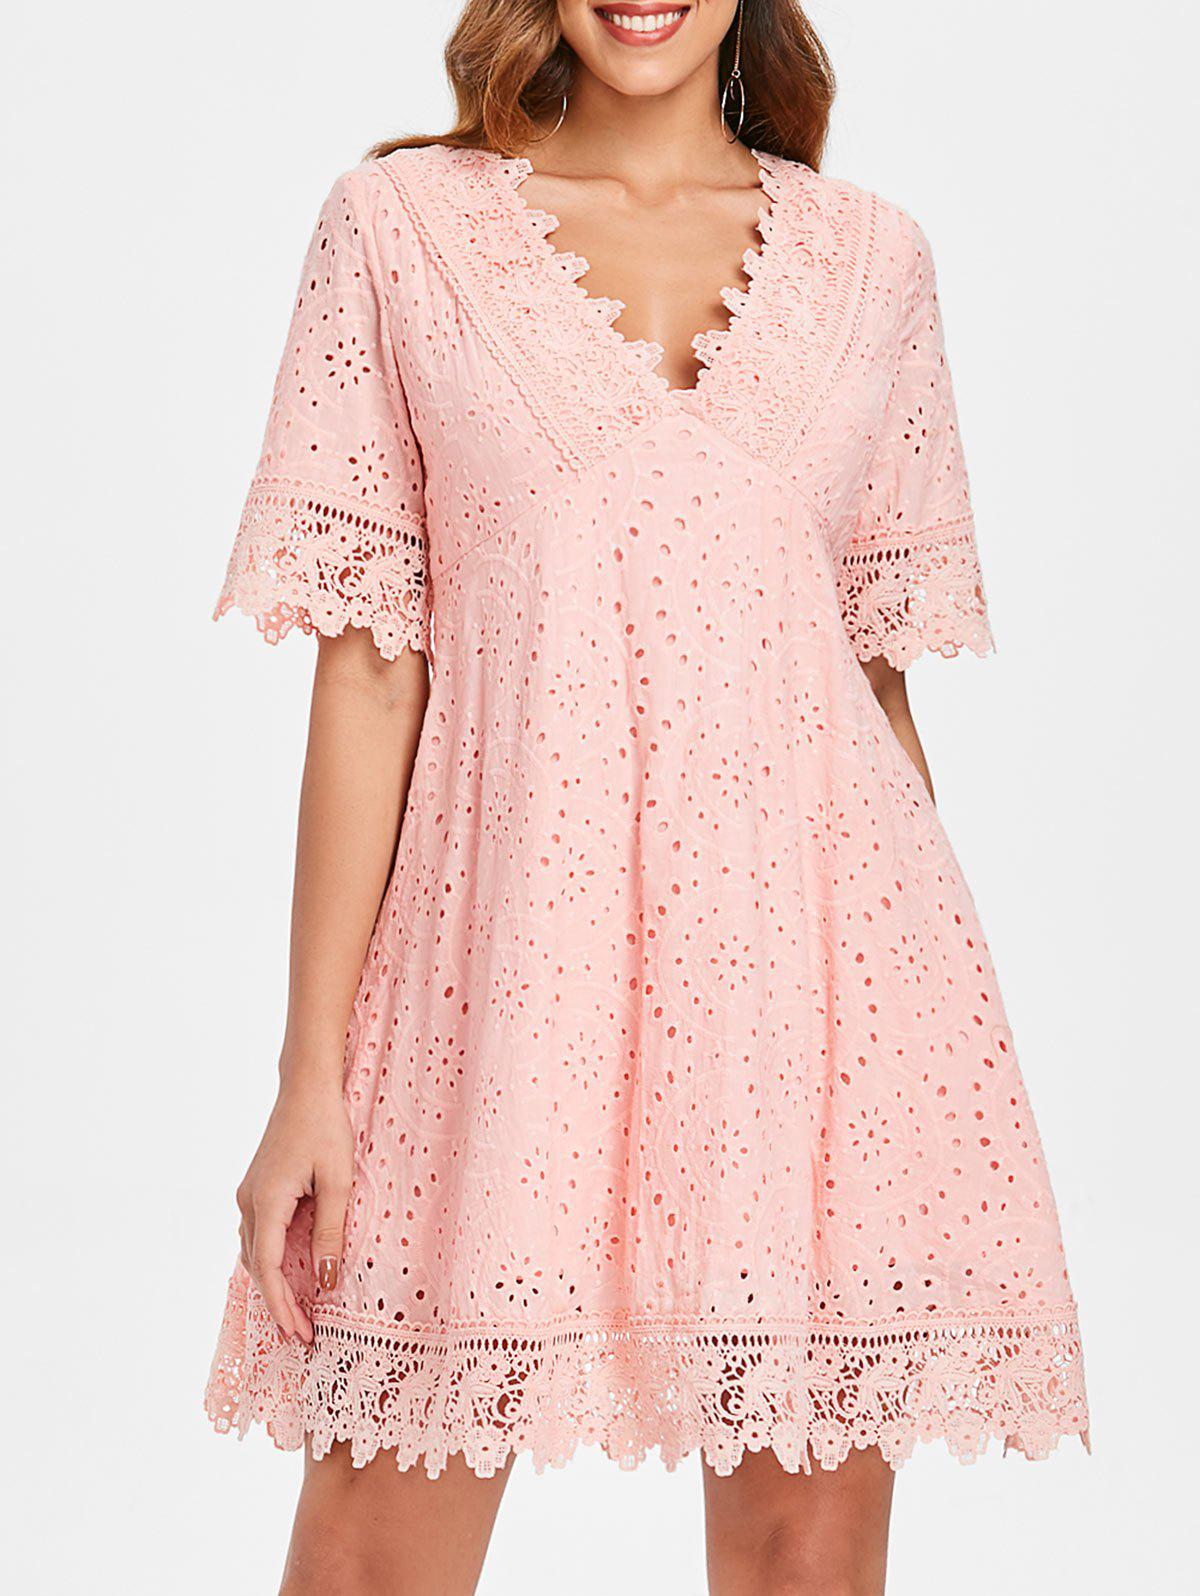 Low Cut Eyelet Mini Swing Dress - LIGHT PINK L